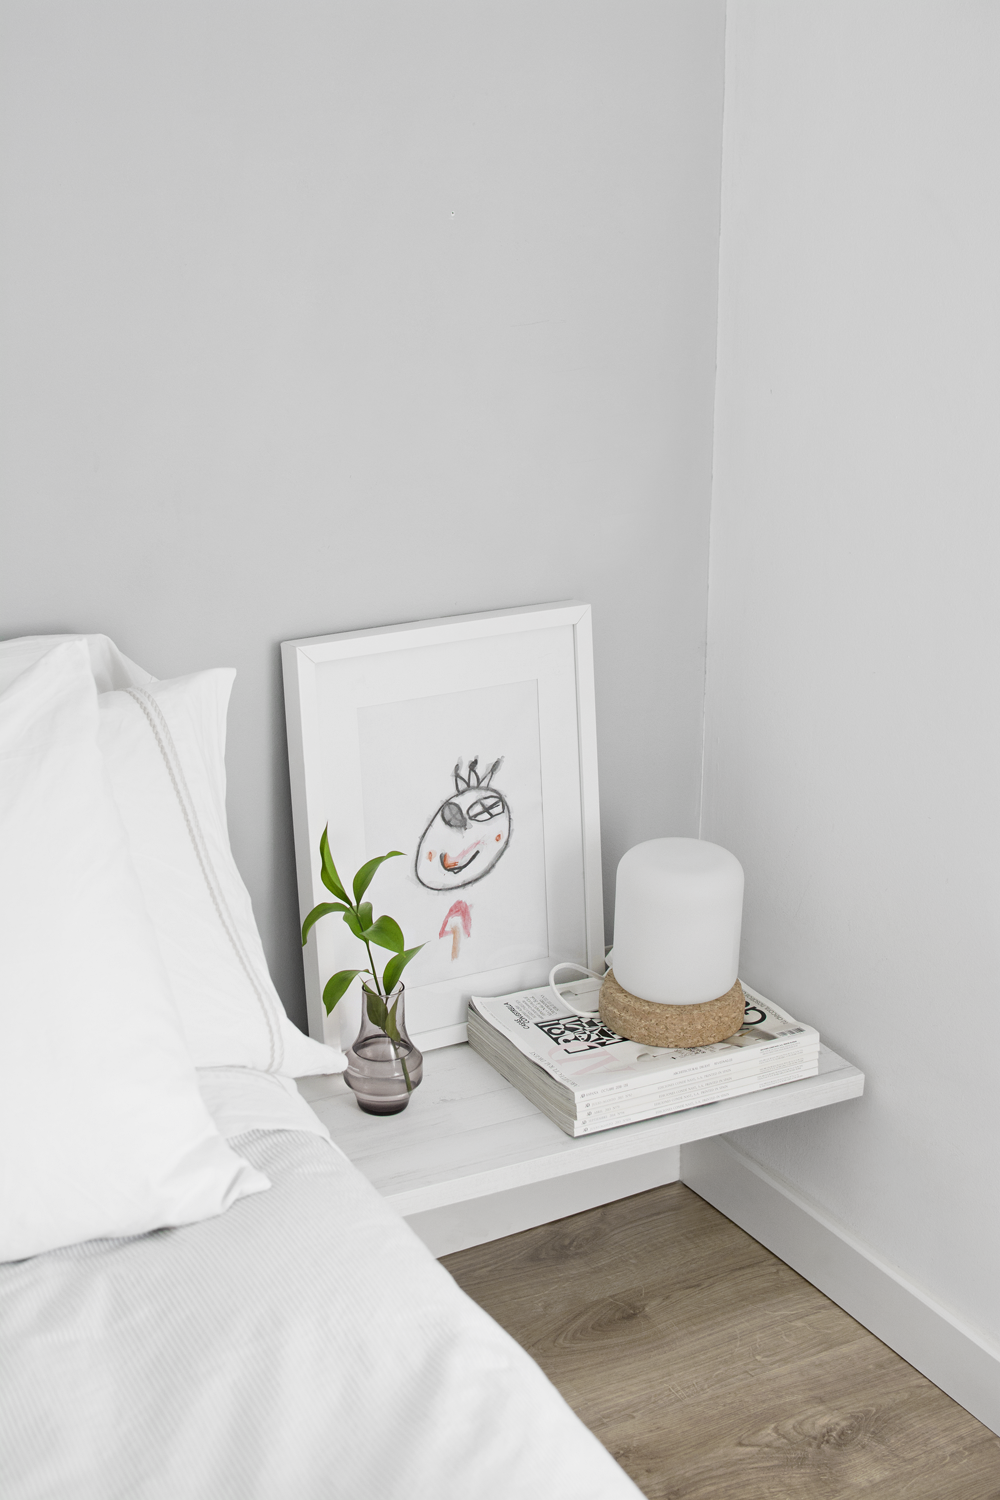 DIY - Minimalist bedside table for a Nordic style bedroom / DIY - Mesilla de noche minimalista en dormitorio estilo nórdico